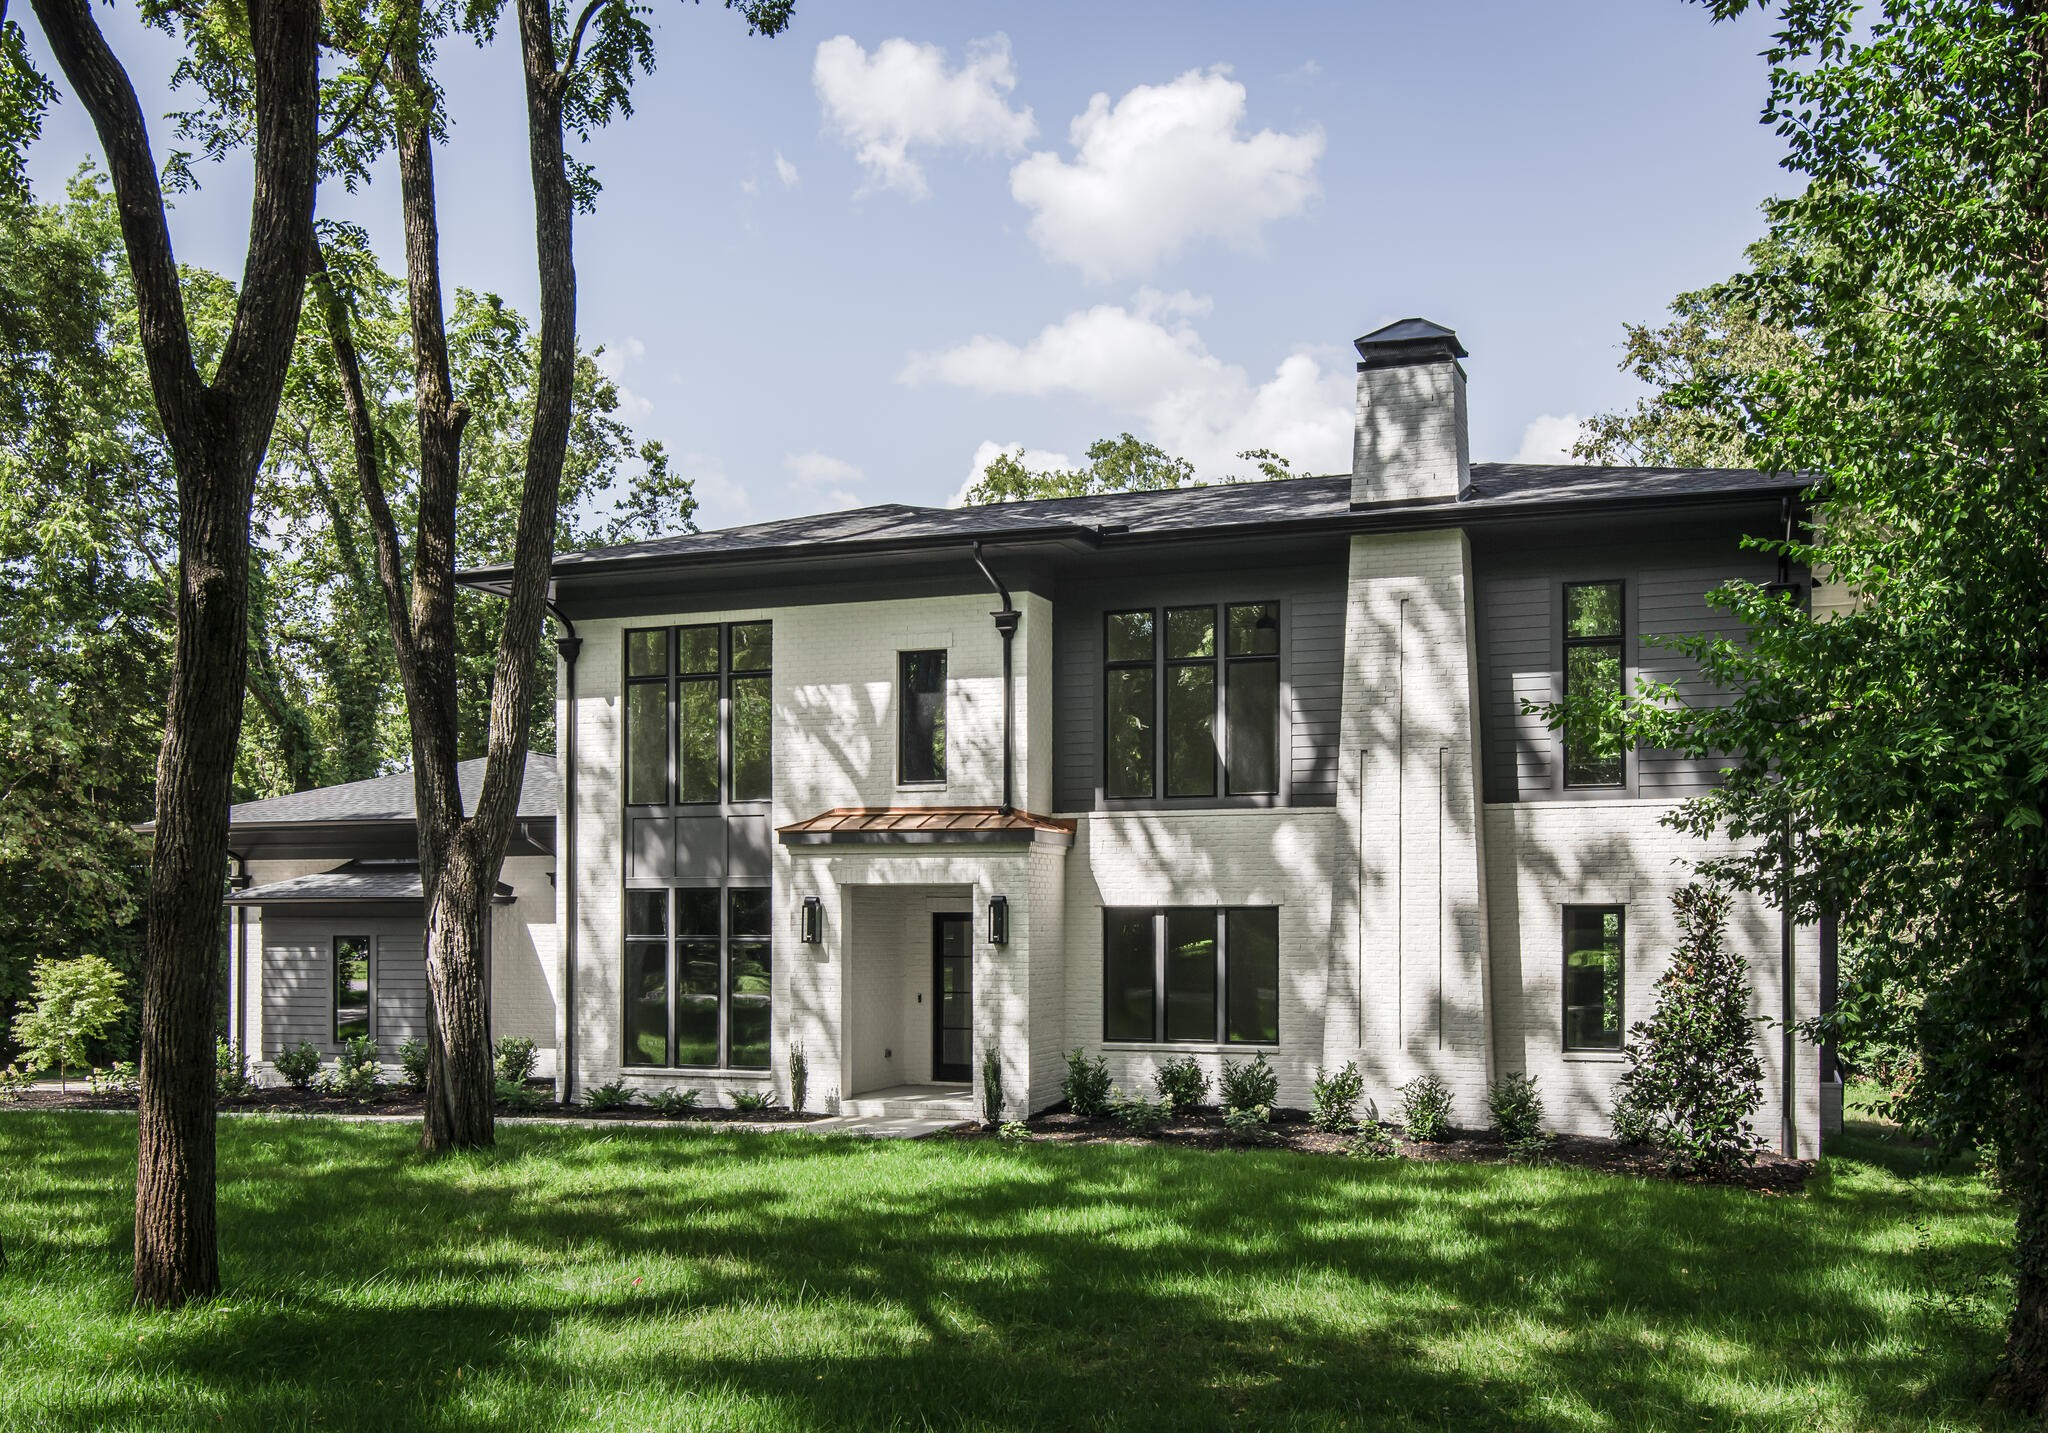 Contemporary design in Belle Meade Highlands! This gorgeous new construction home has 2 bedrooms on the main floor, luxury finishes and 3 car garage on an over half acre lot w/ room for a pool! P.Shea Design & Province Builders home that offers all the bells & whistles while maintaining understated elegance.  Don't miss this!